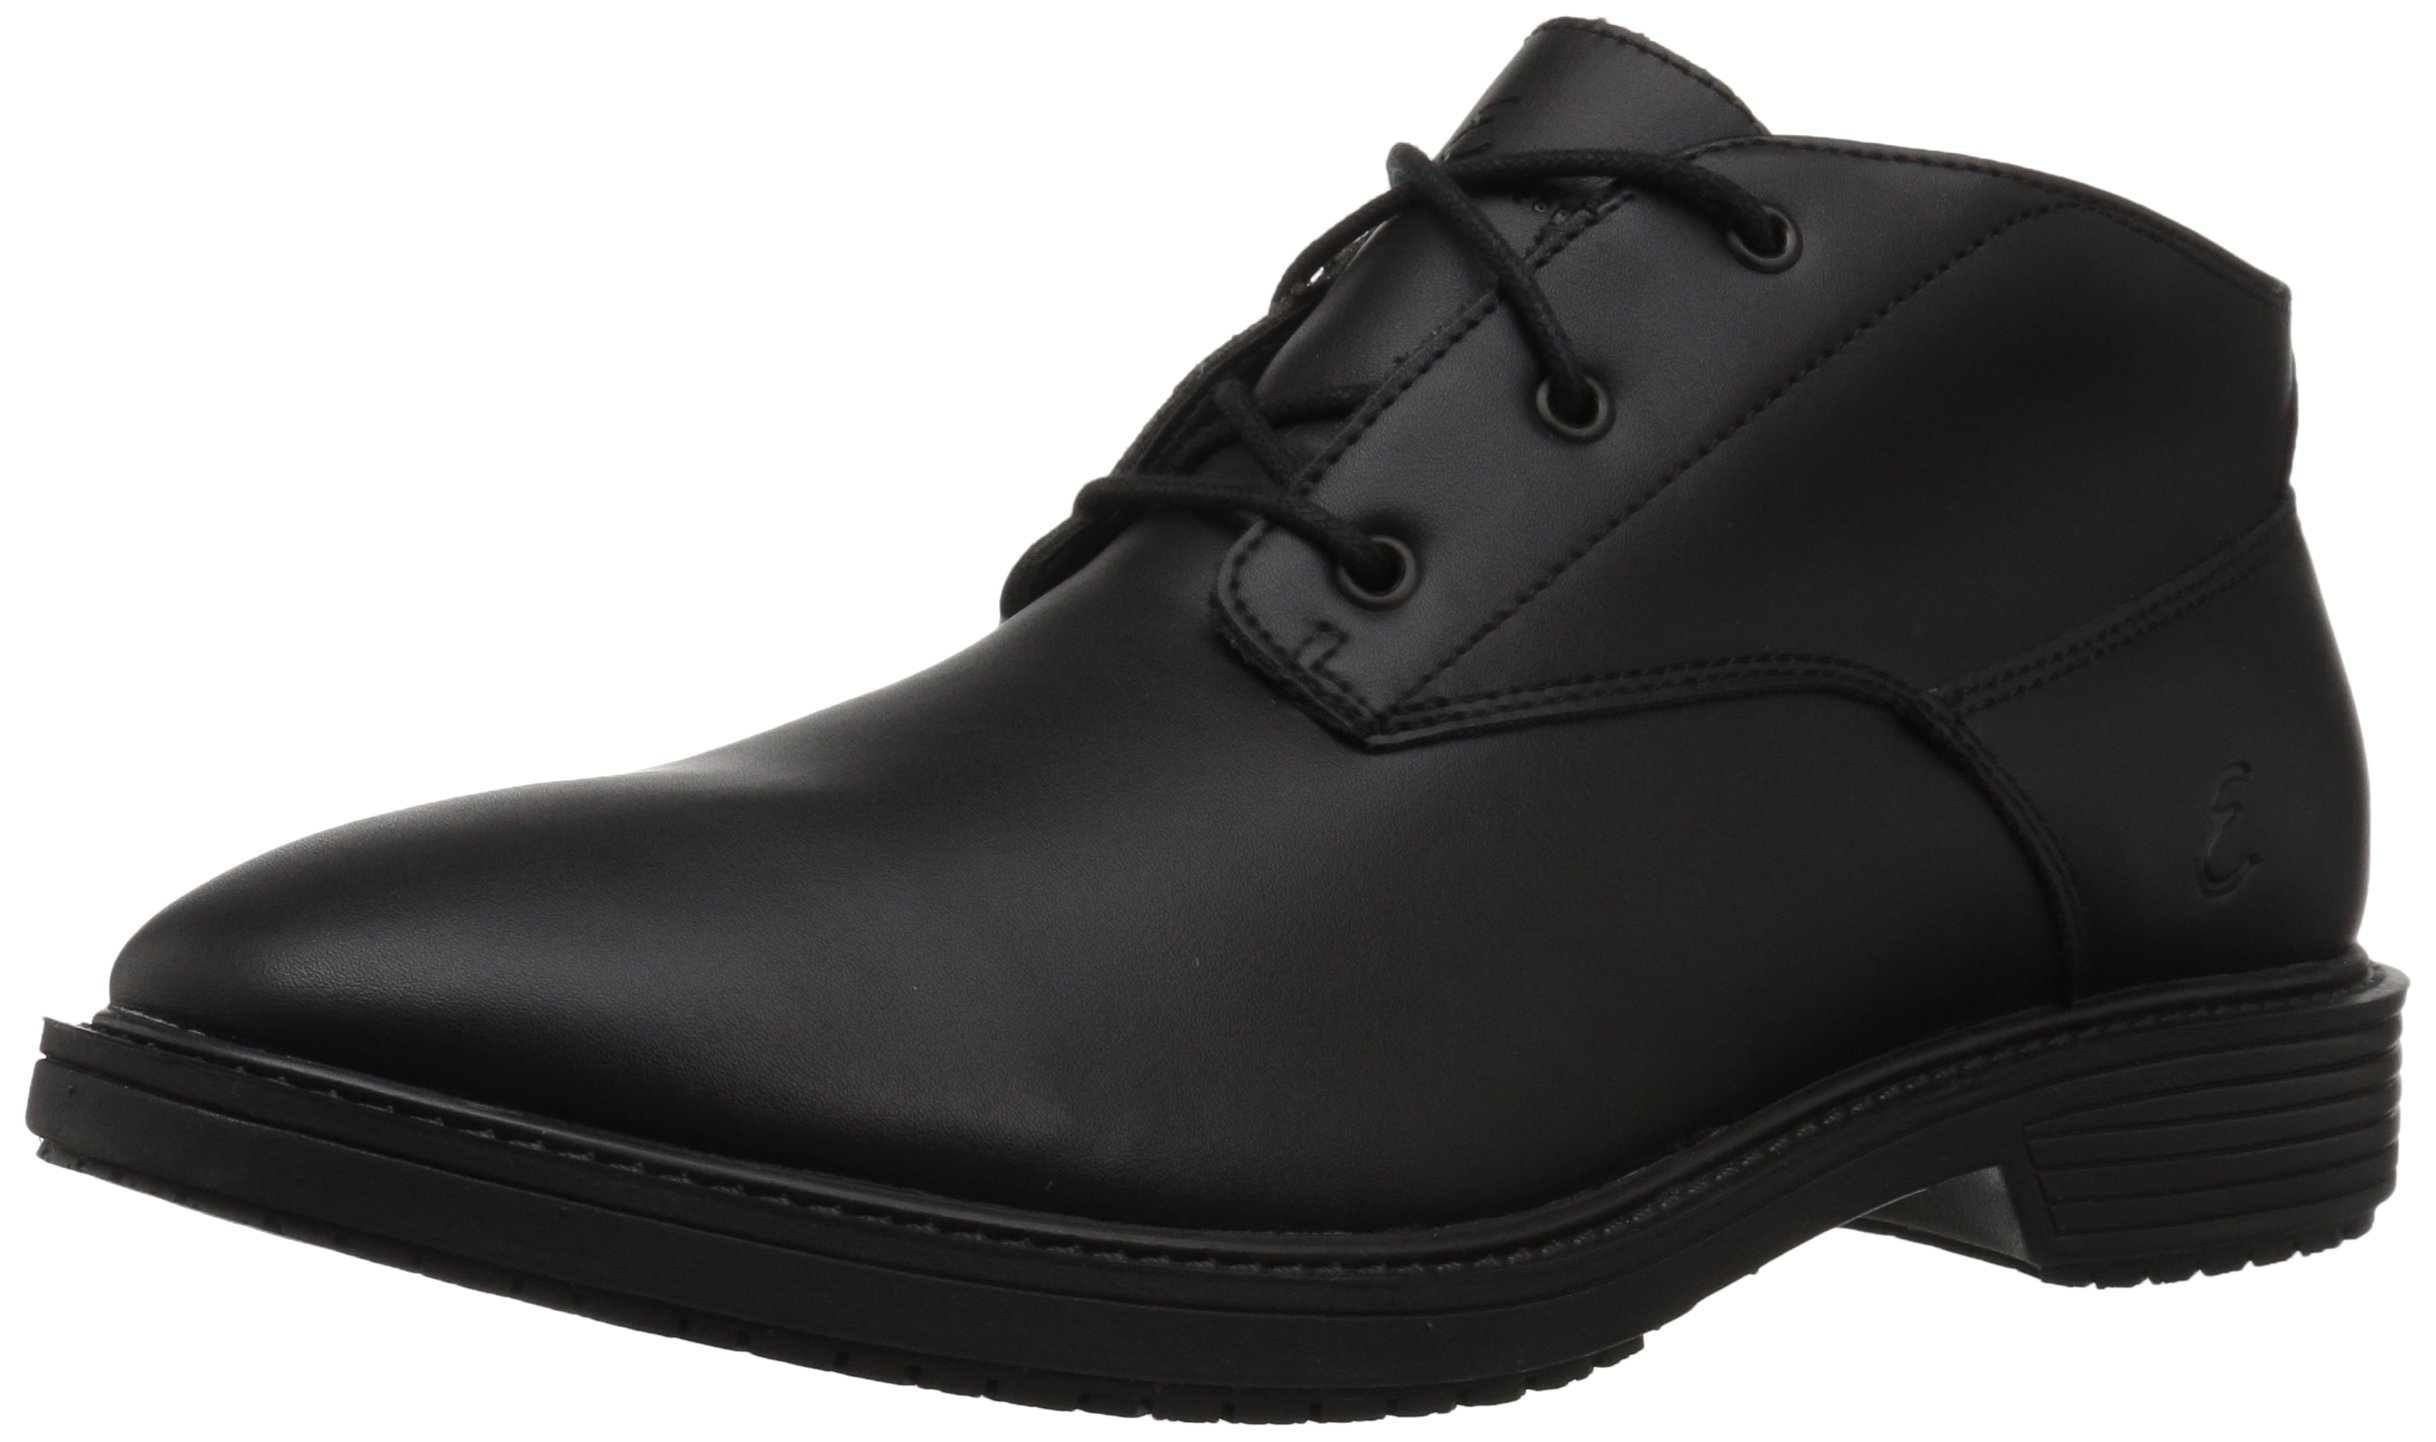 Emeril Lagasse Men's Ward Food Service Shoe, Black, 9 Medium US